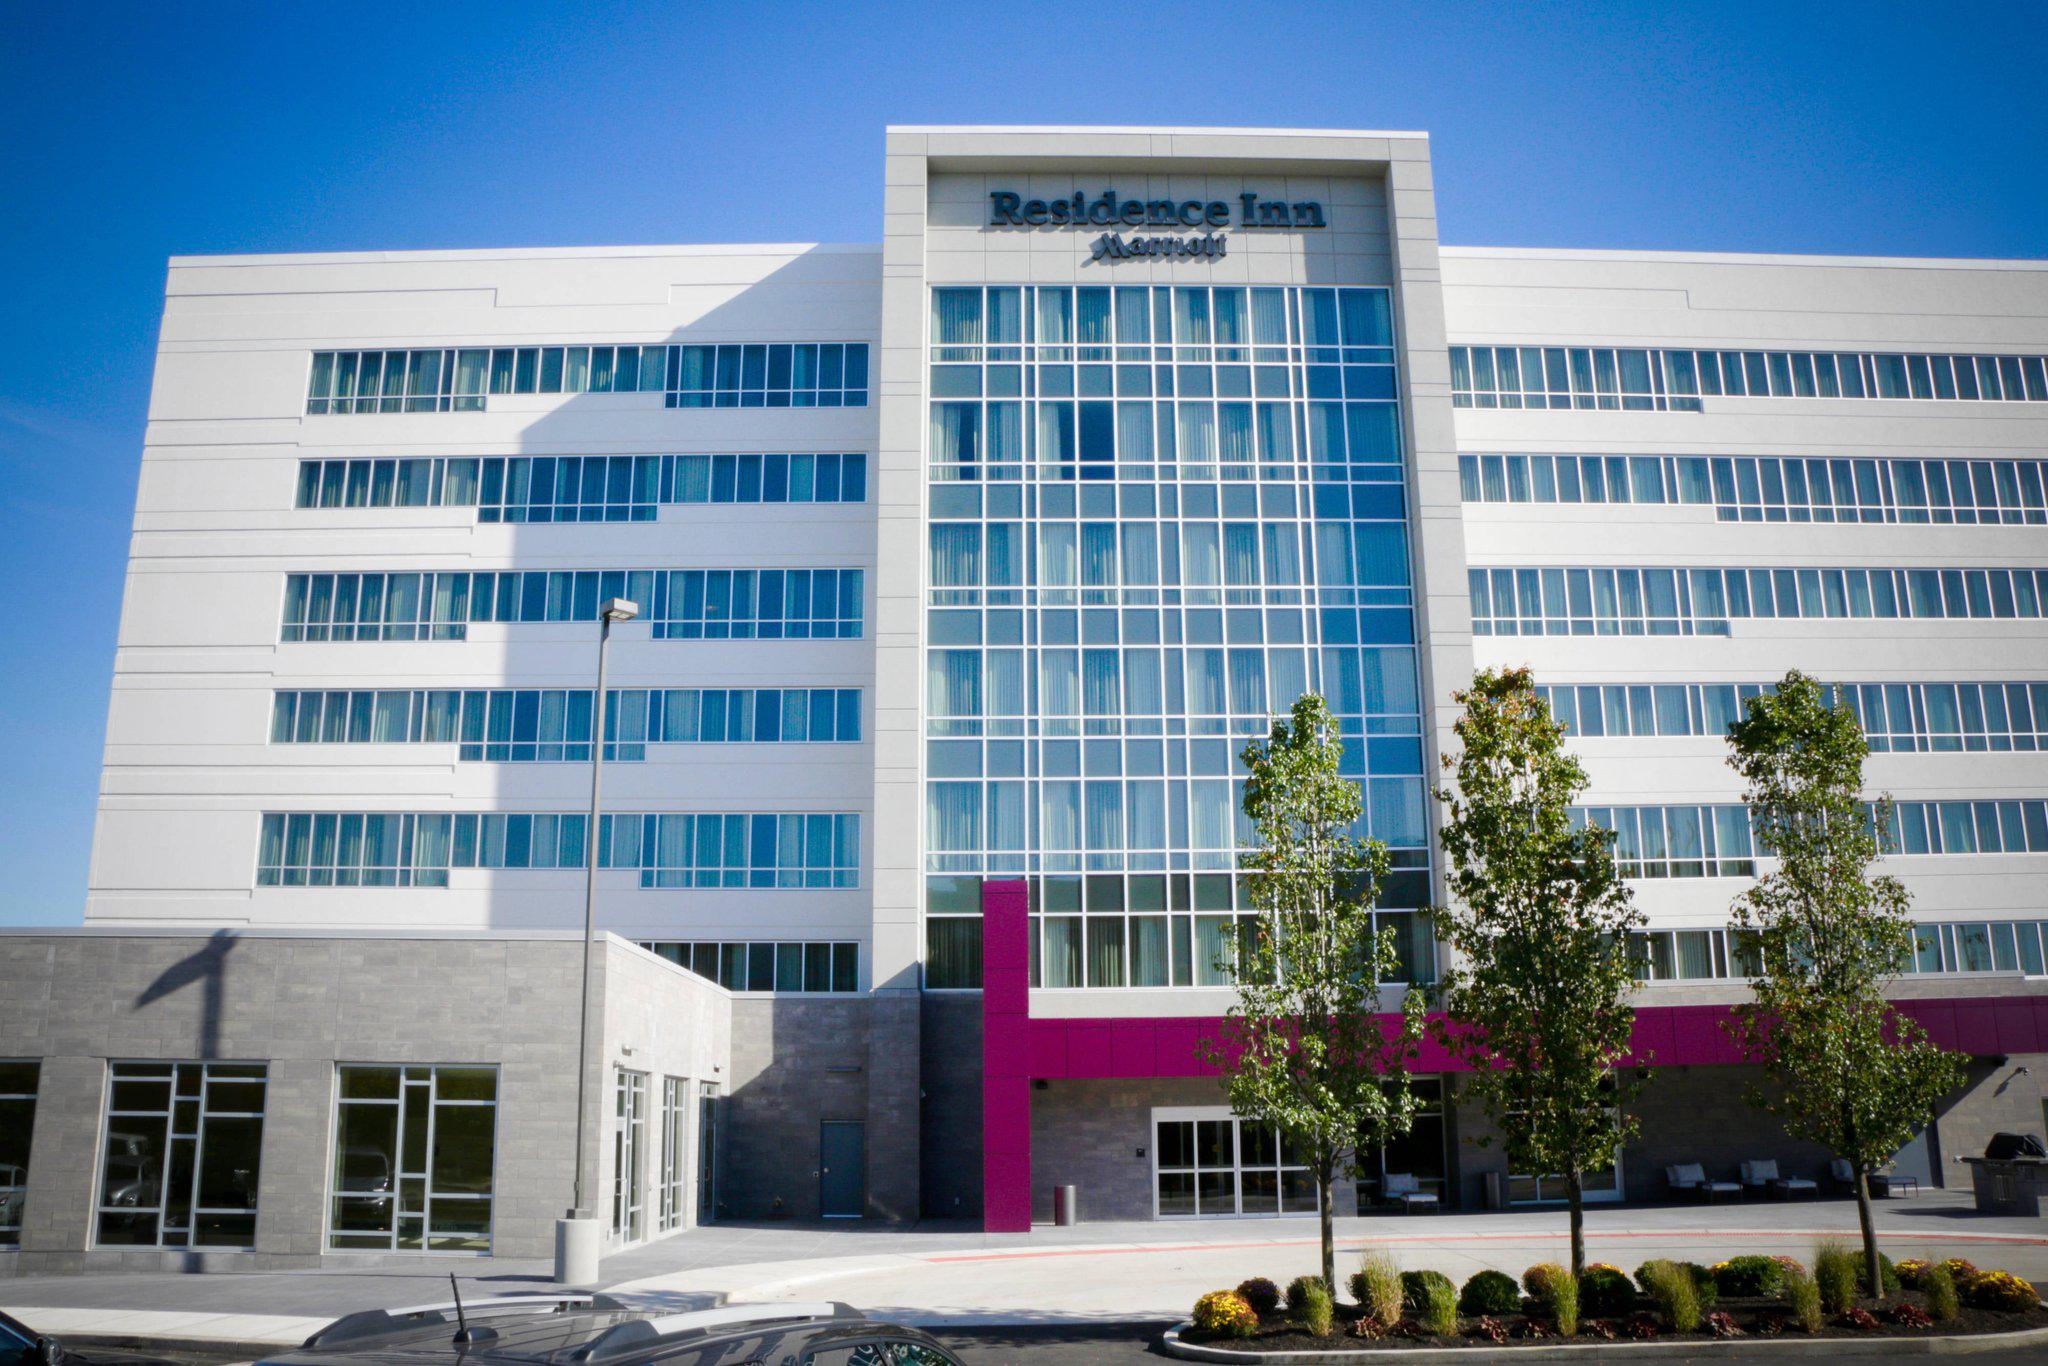 Residence Inn by Marriott Cincinnati Midtown/Rookwood